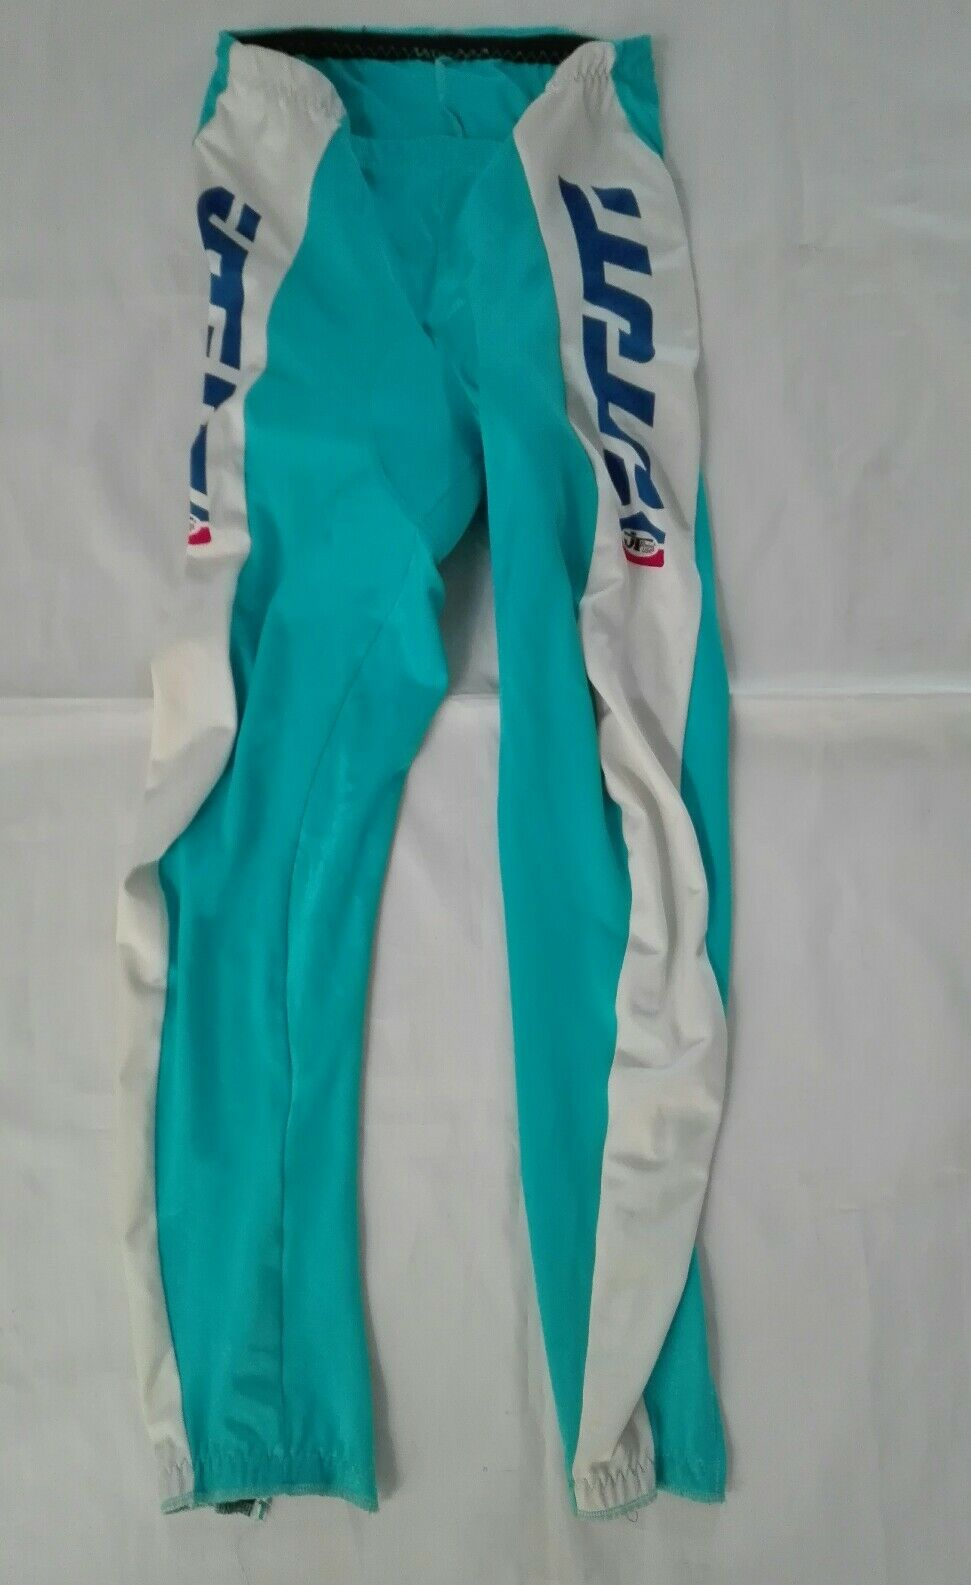 JT RACING USA PANTS PANTALONE MTB TAGLIA-SIZE XL